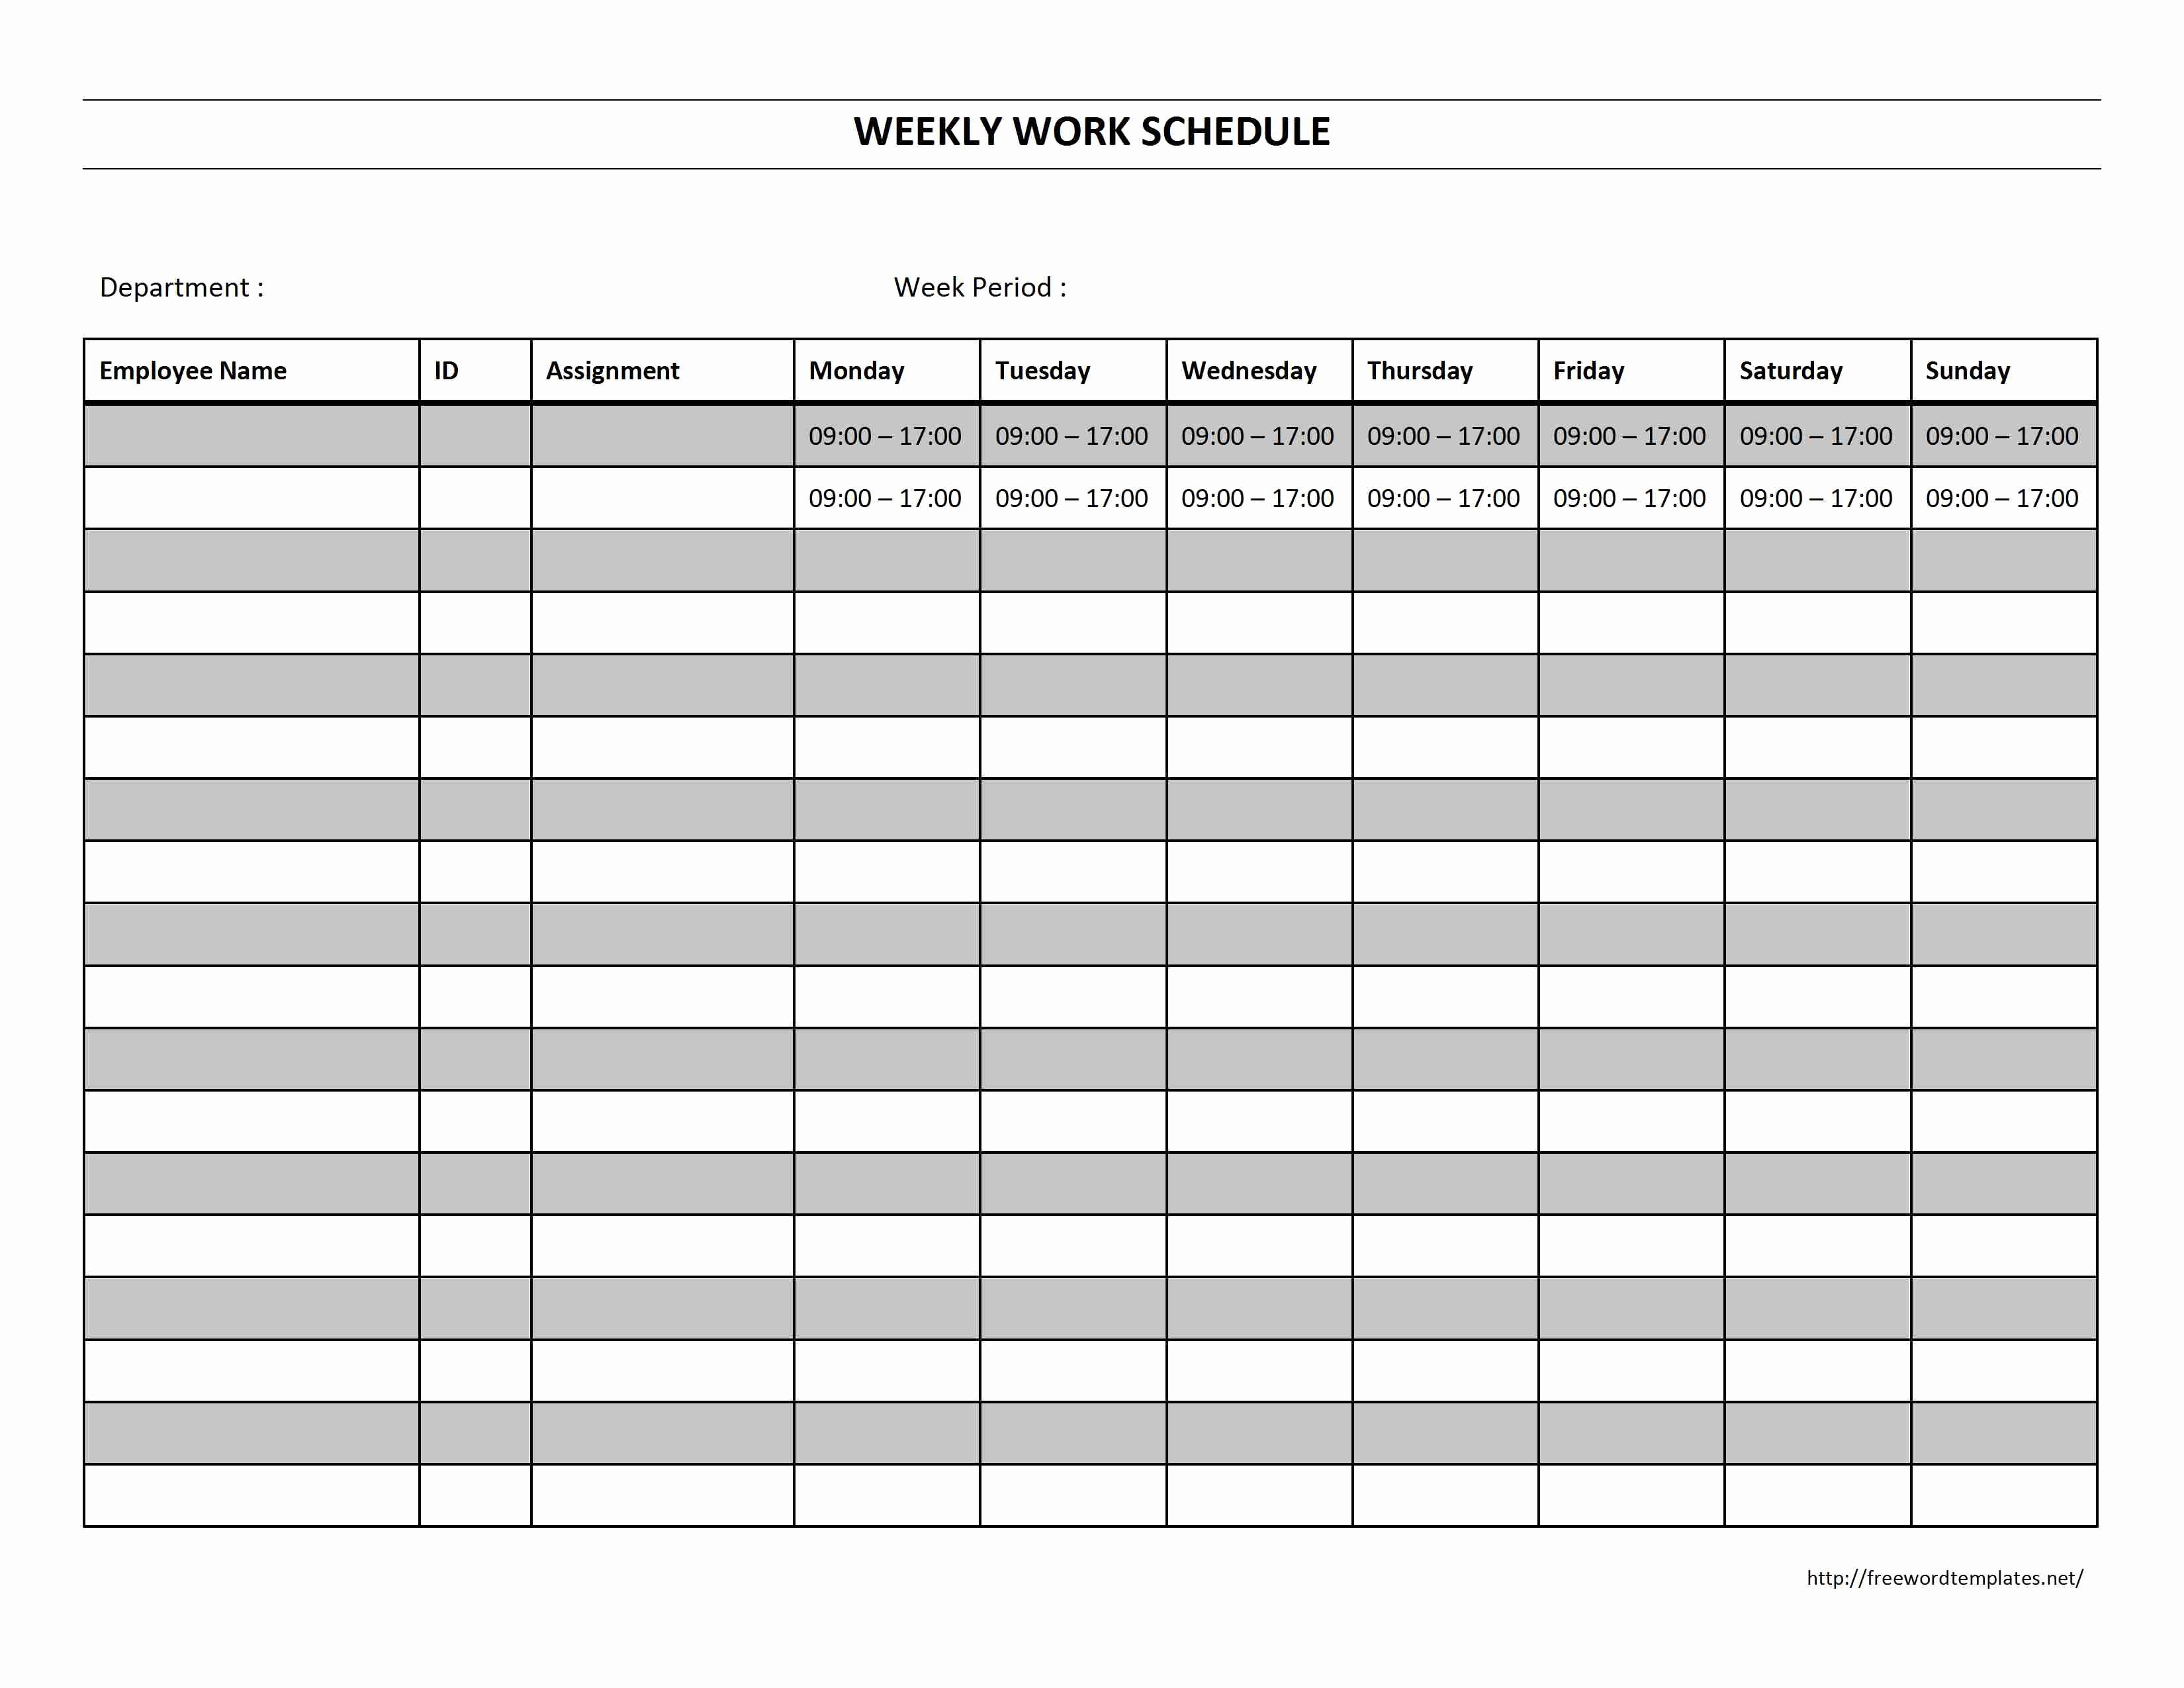 post worksheet for a service business